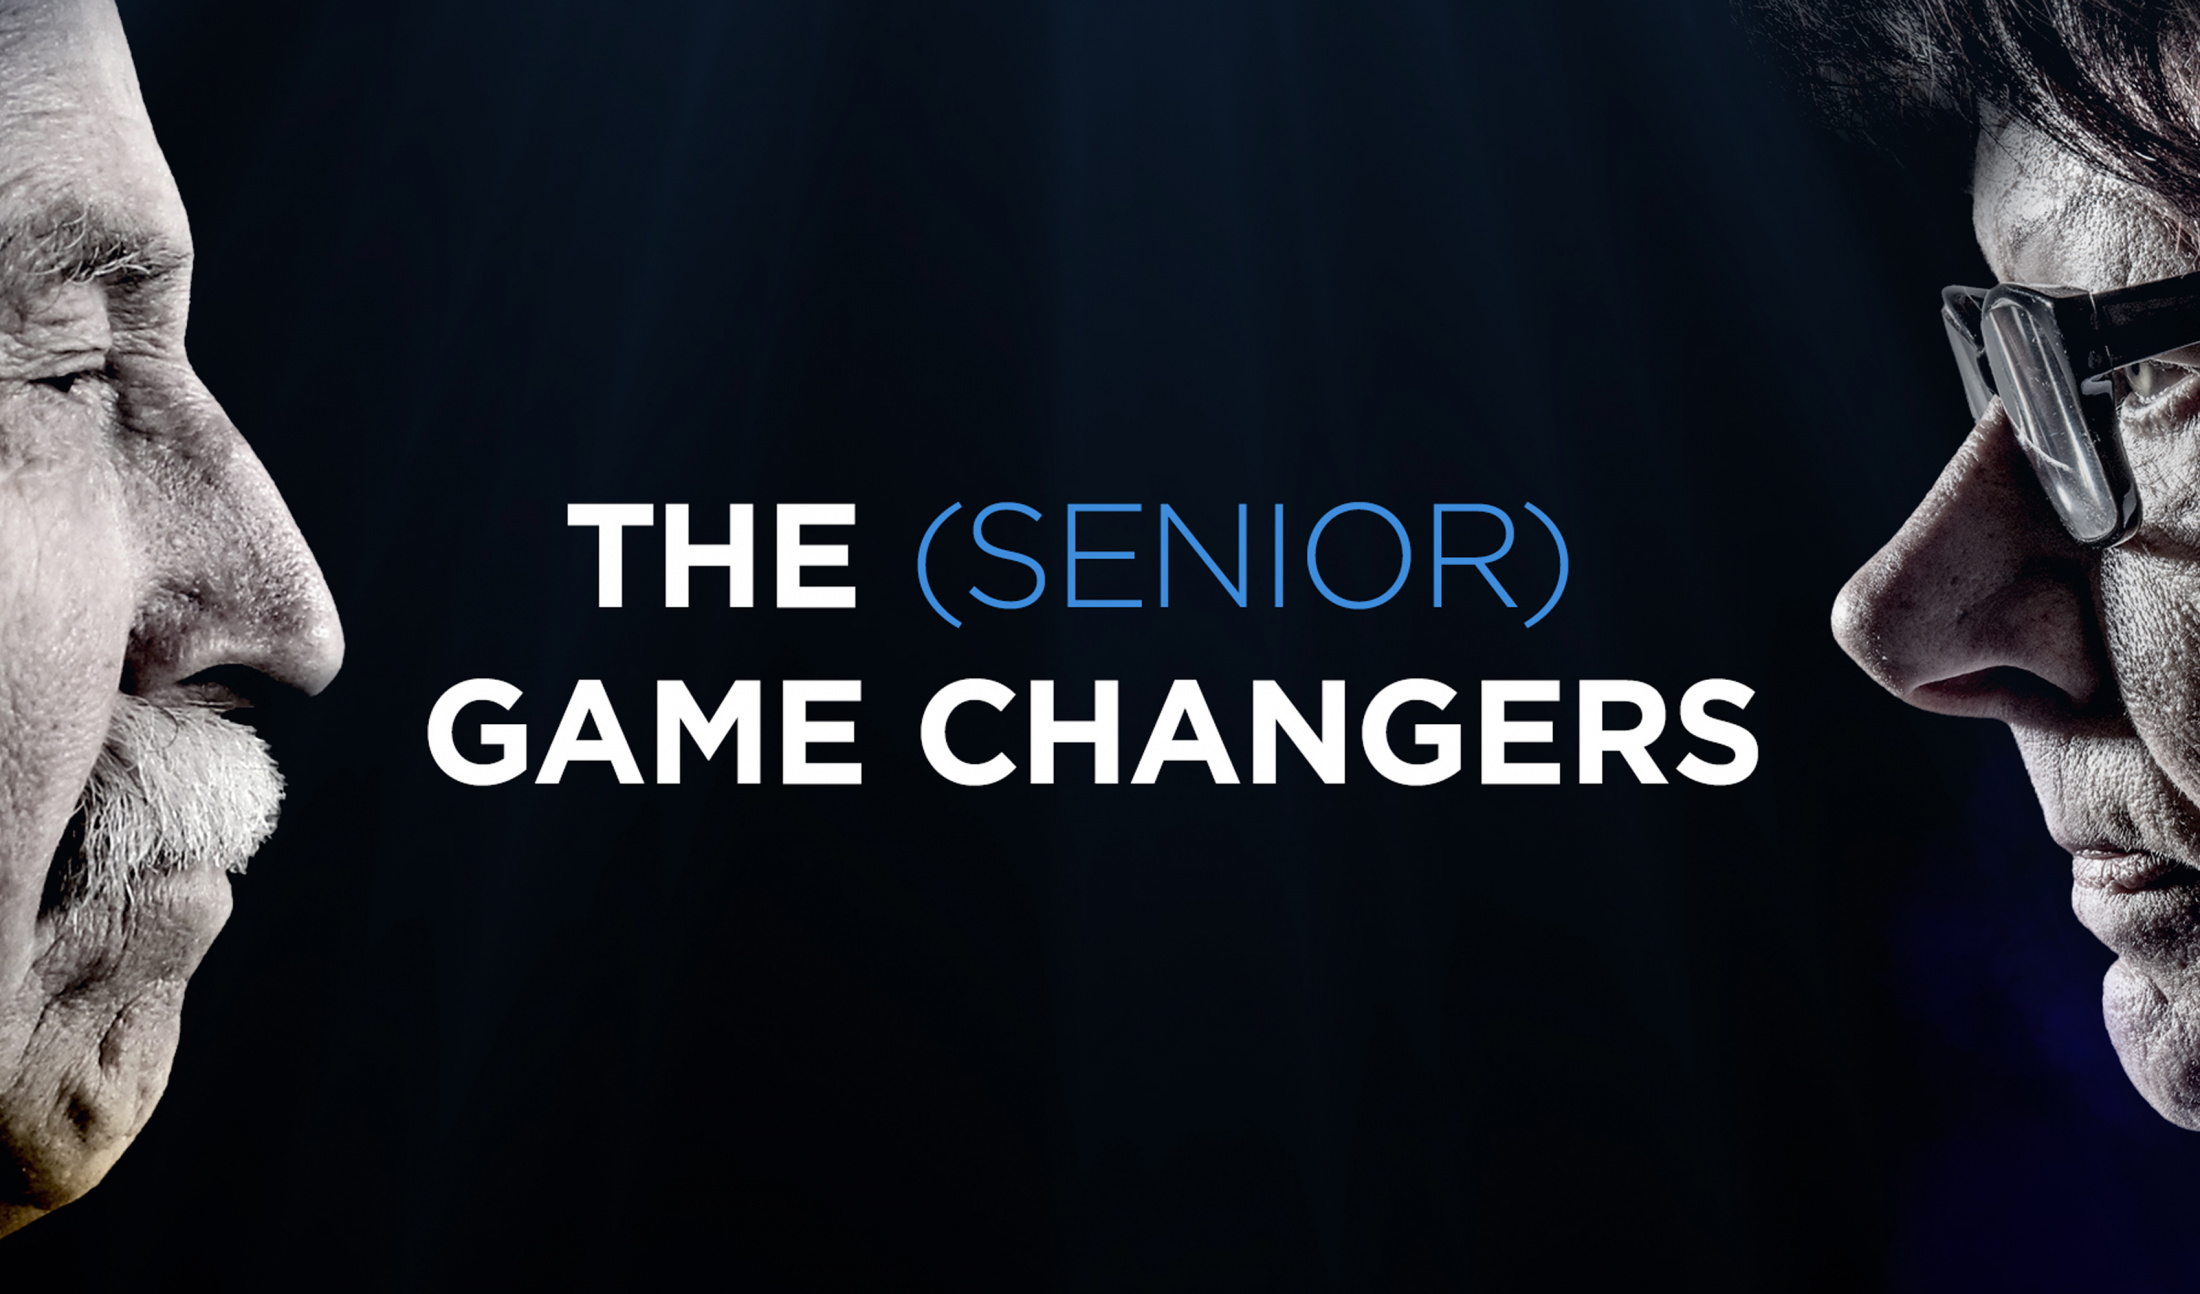 Thumbnail for The Senior Game Changers